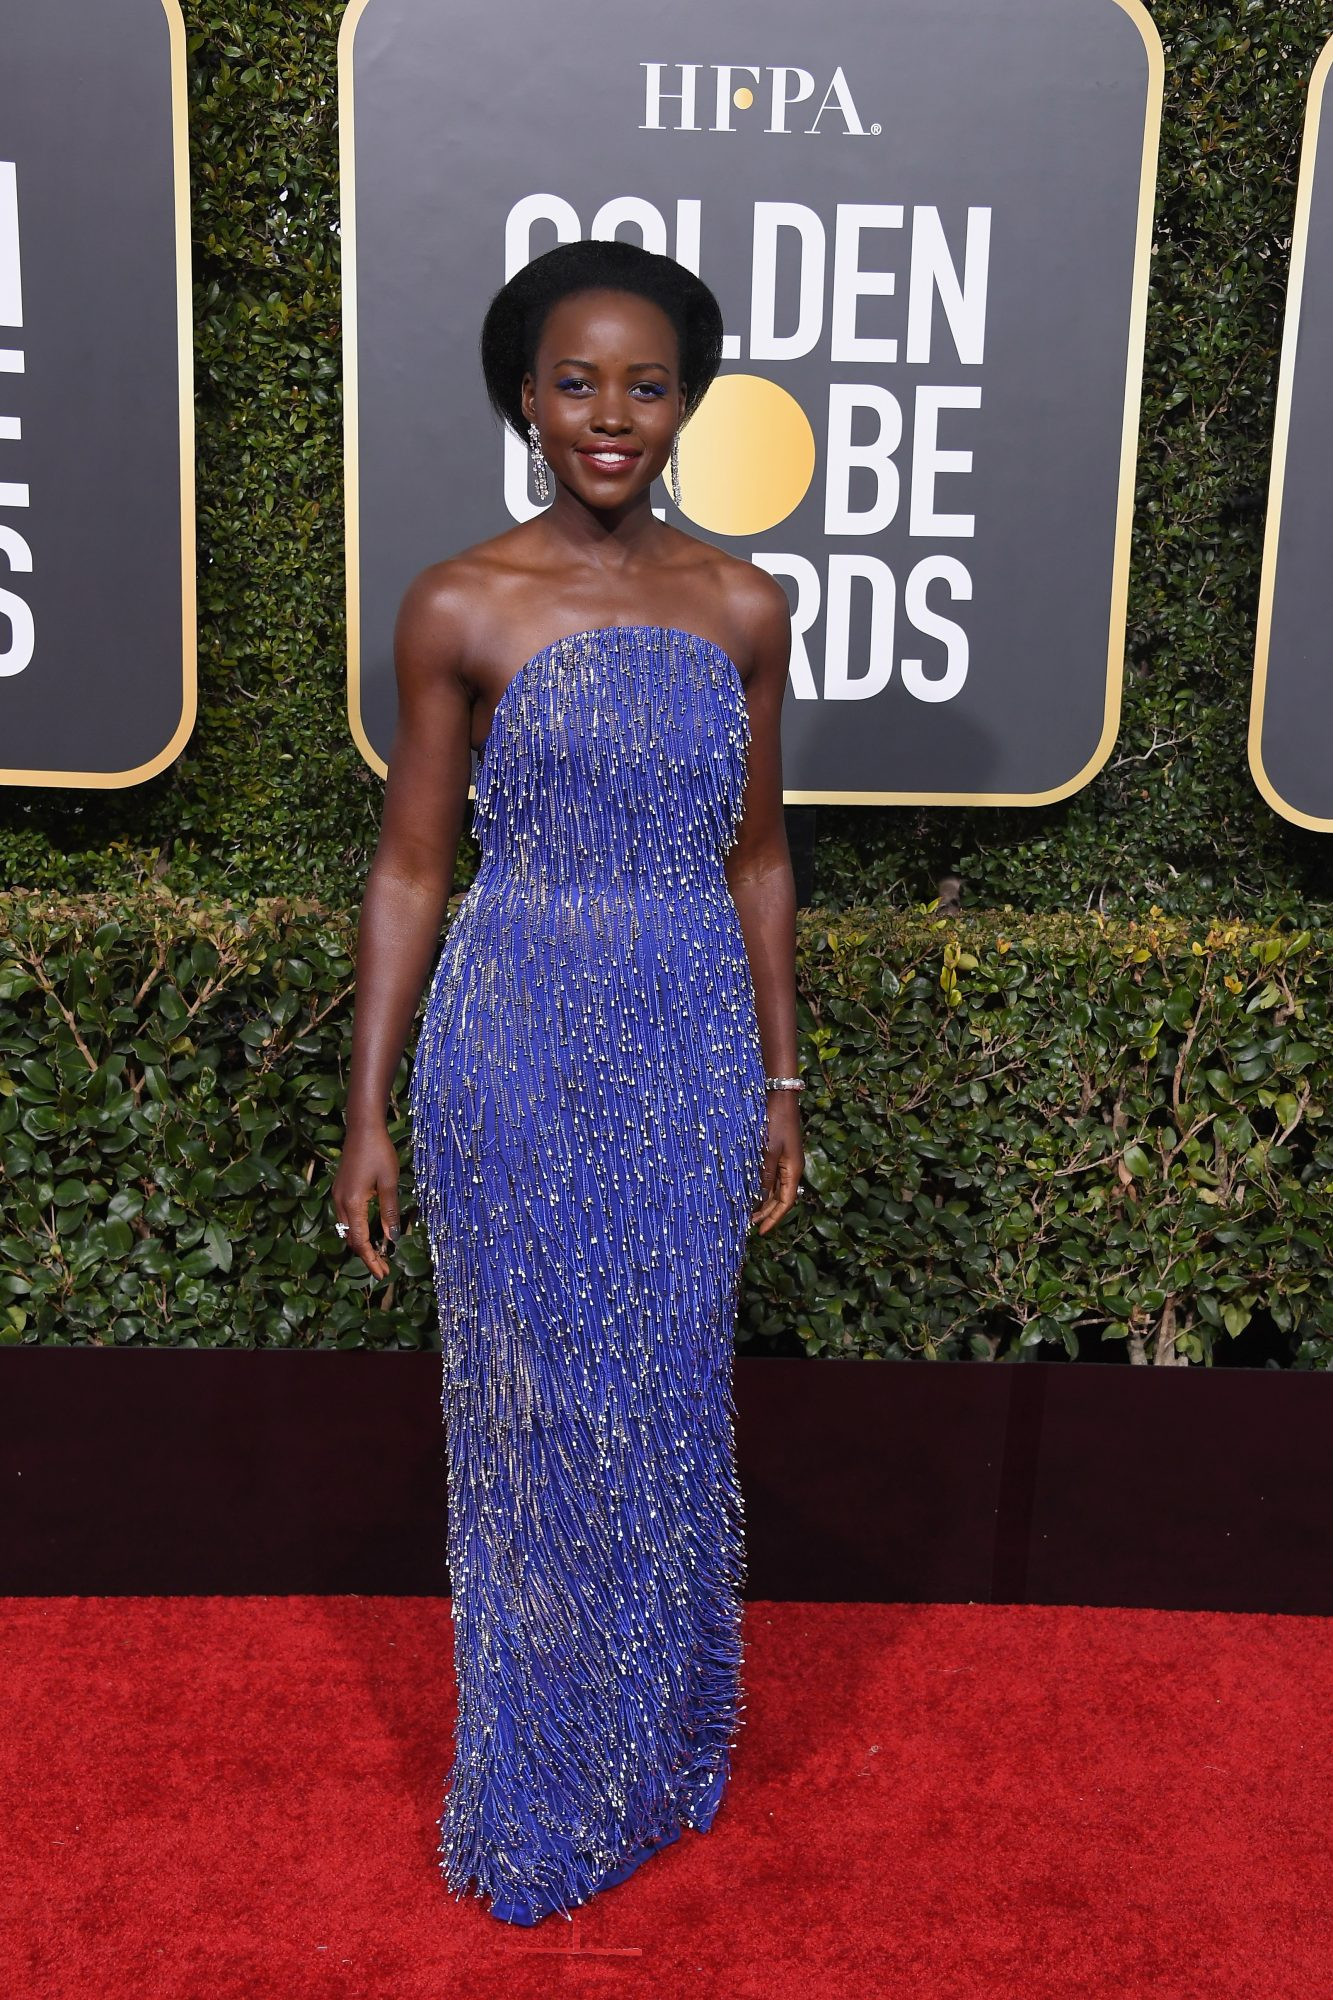 Lupita Nyong'o Wore the Most Comfortable $45 Heels to the 2019 Golden Globes